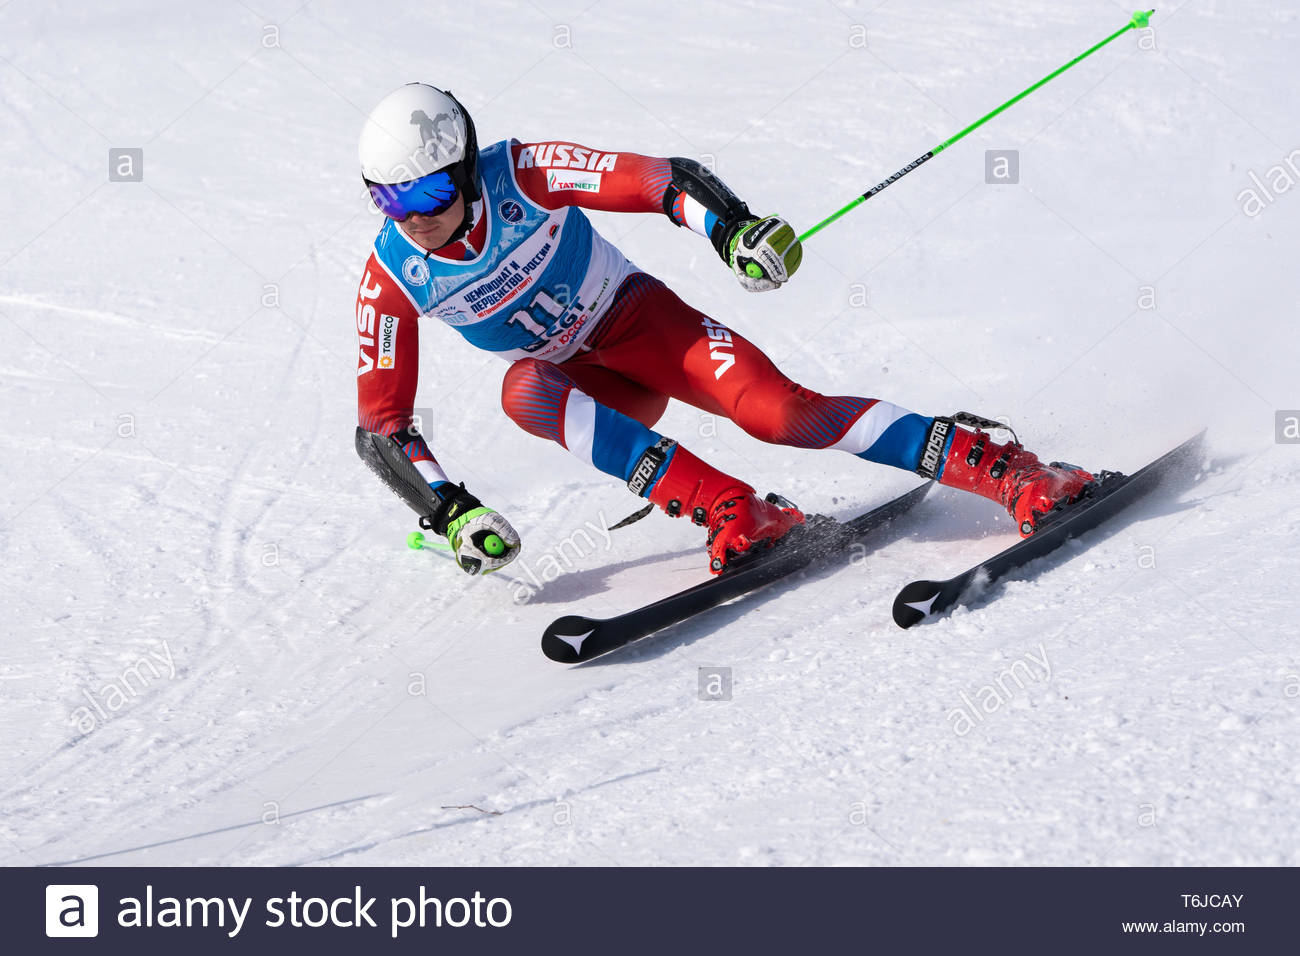 KAMCHATKA PENINSULA, RUSSIA - APR 1, 2019: Mountain skier Alekhin Nikita (Kamchatka) skiing down mount slope. Russian Alpine Skiing Cup, International - Stock Image